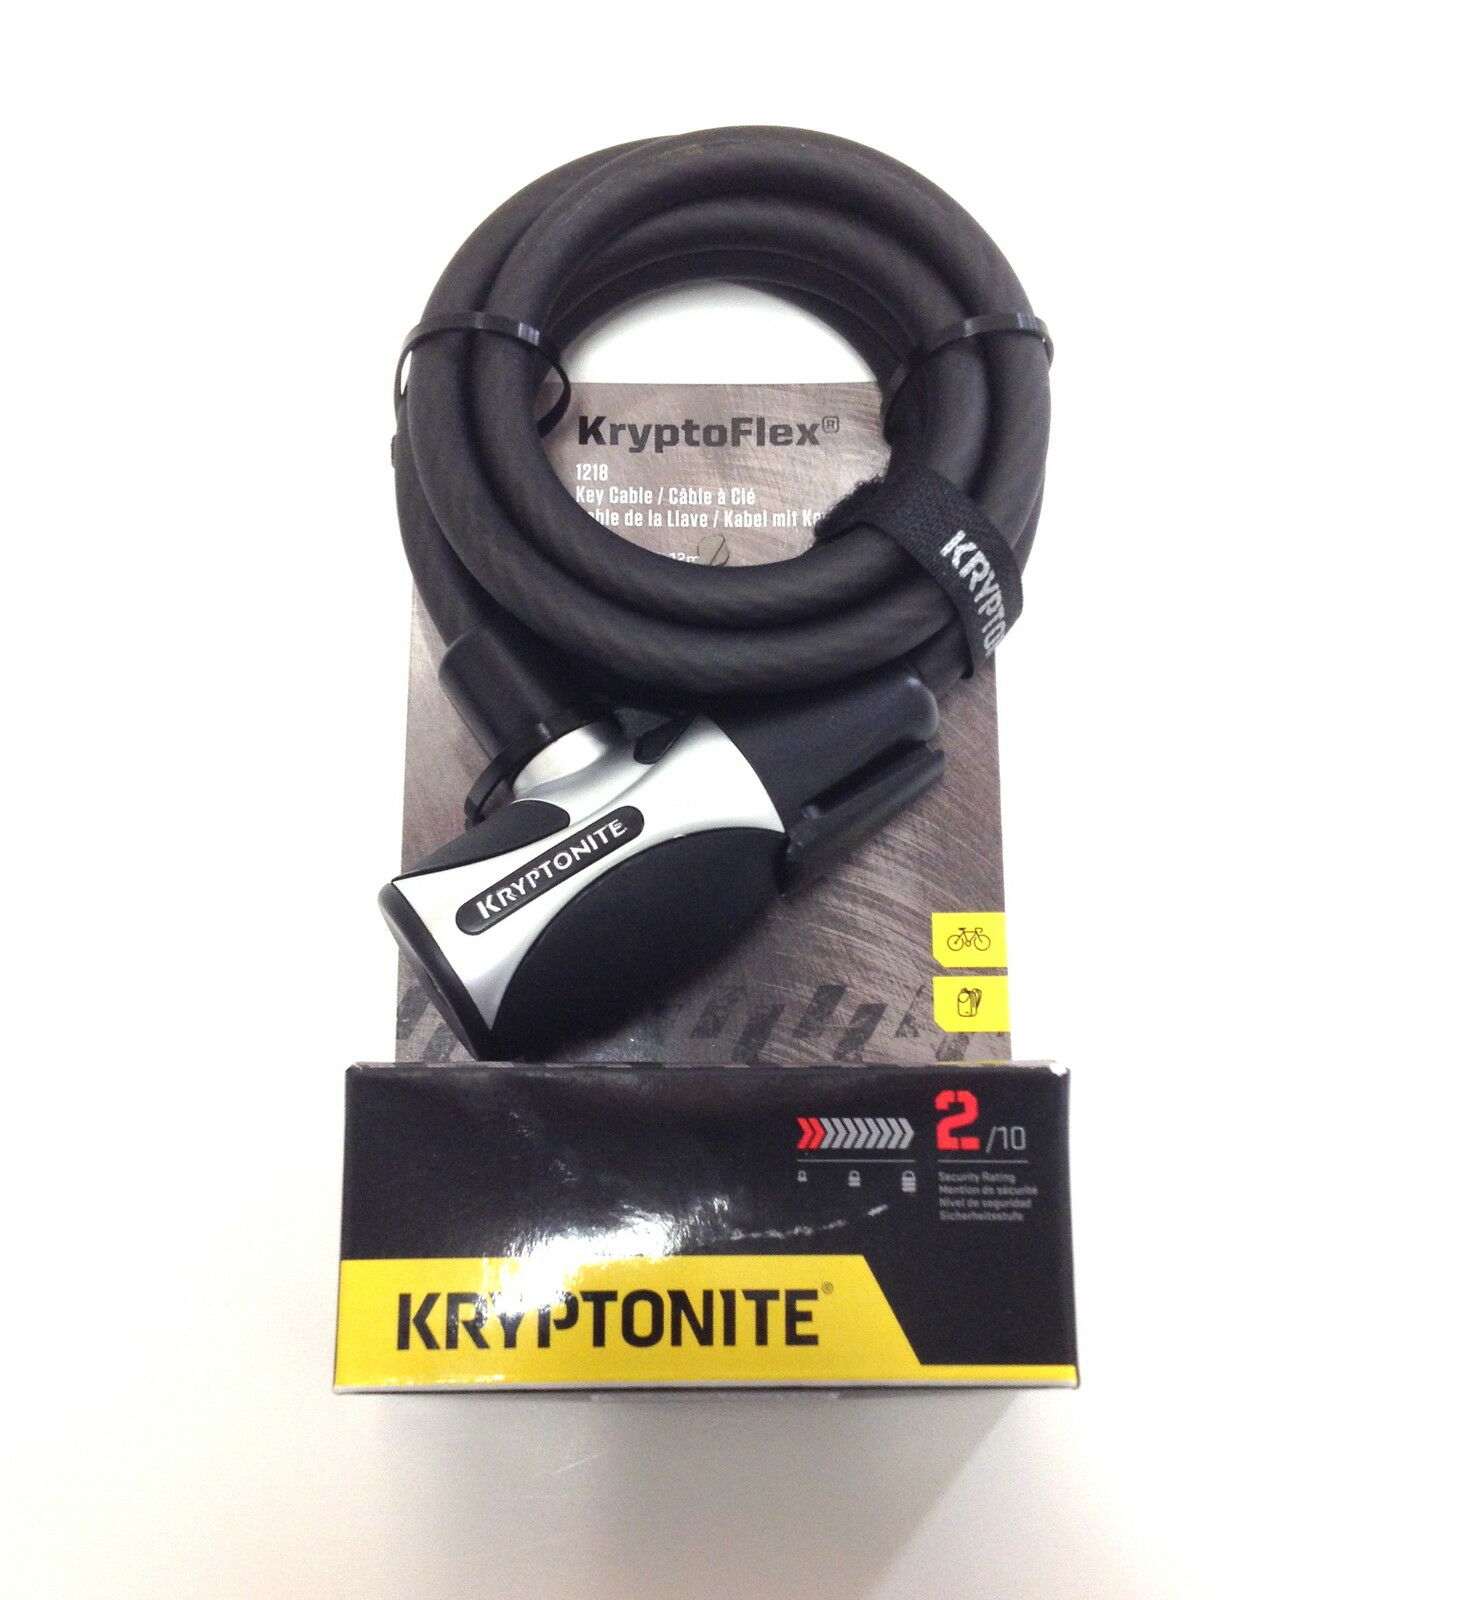 how to open a kryptonite bike lock with the key